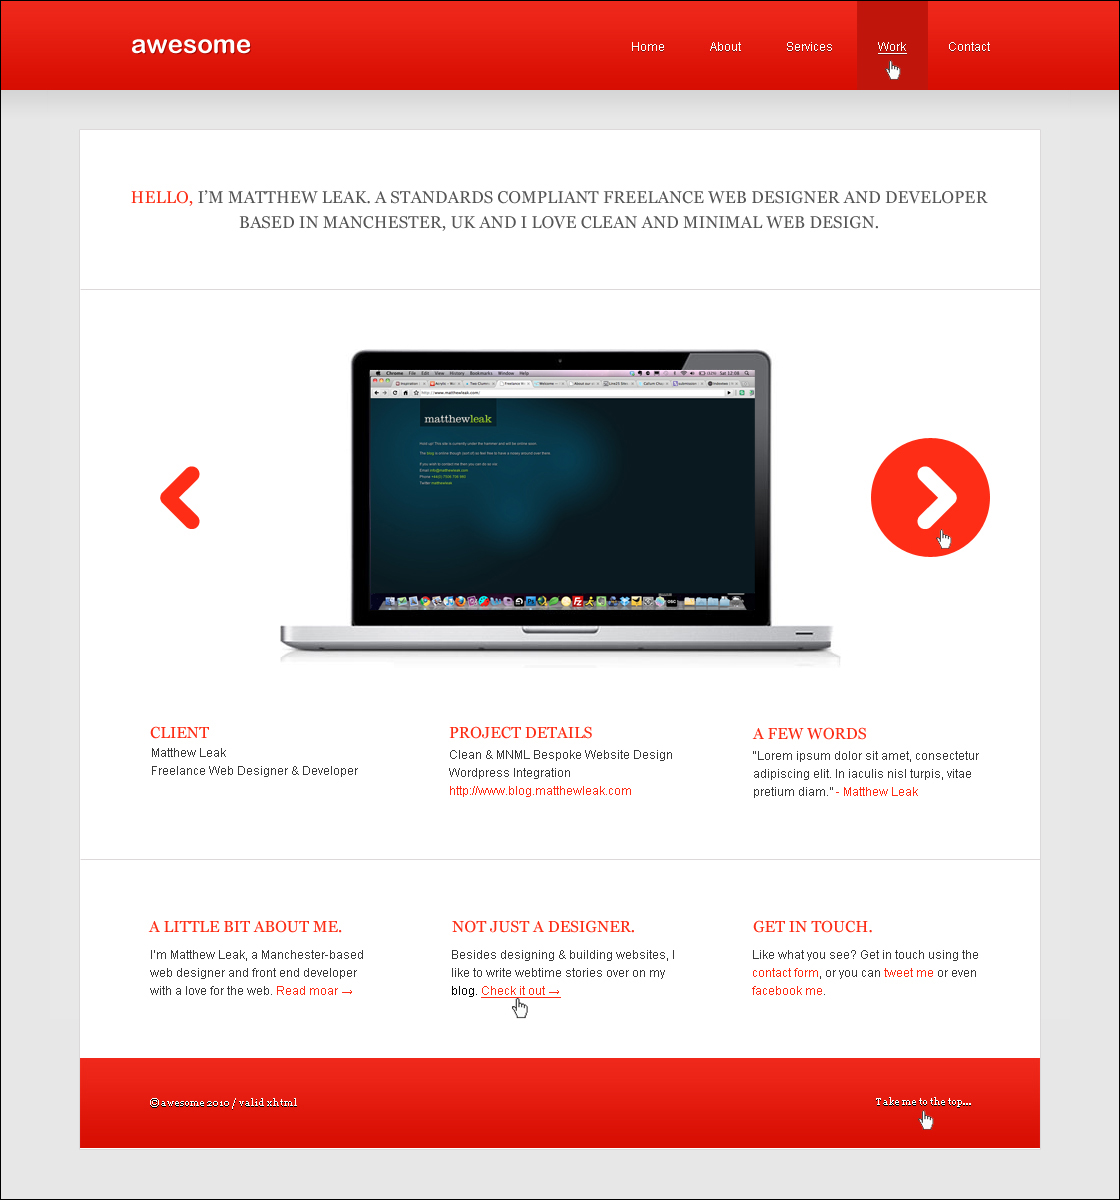 Code an Awesome Minimal Design from PSD to XHTML & CSS